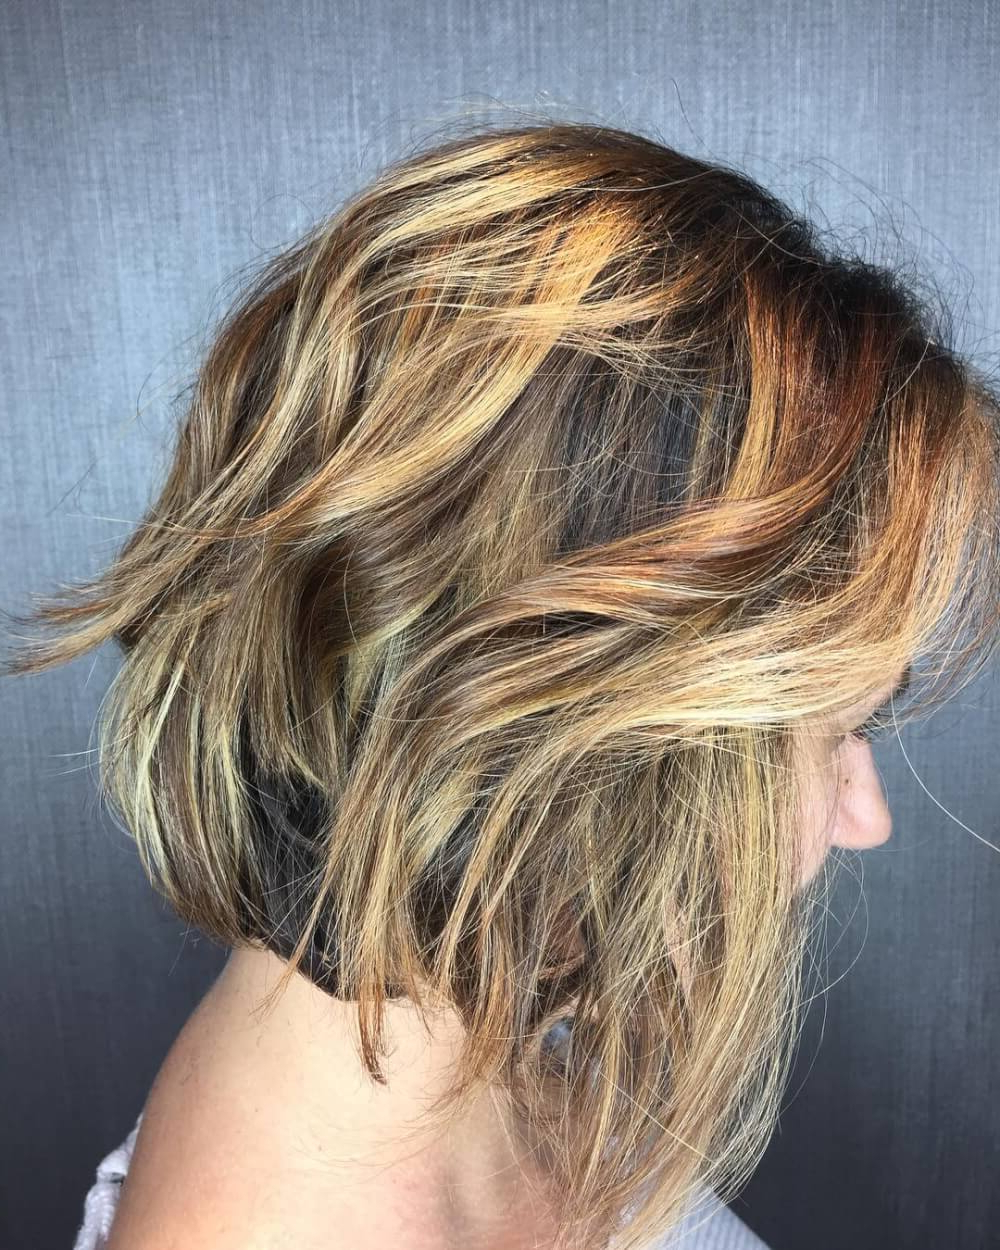 49 Chic Short Bob Hairstyles & Haircuts For Women In 2018 Within Frizzy Razored White Blonde Bob Haircuts (View 10 of 20)